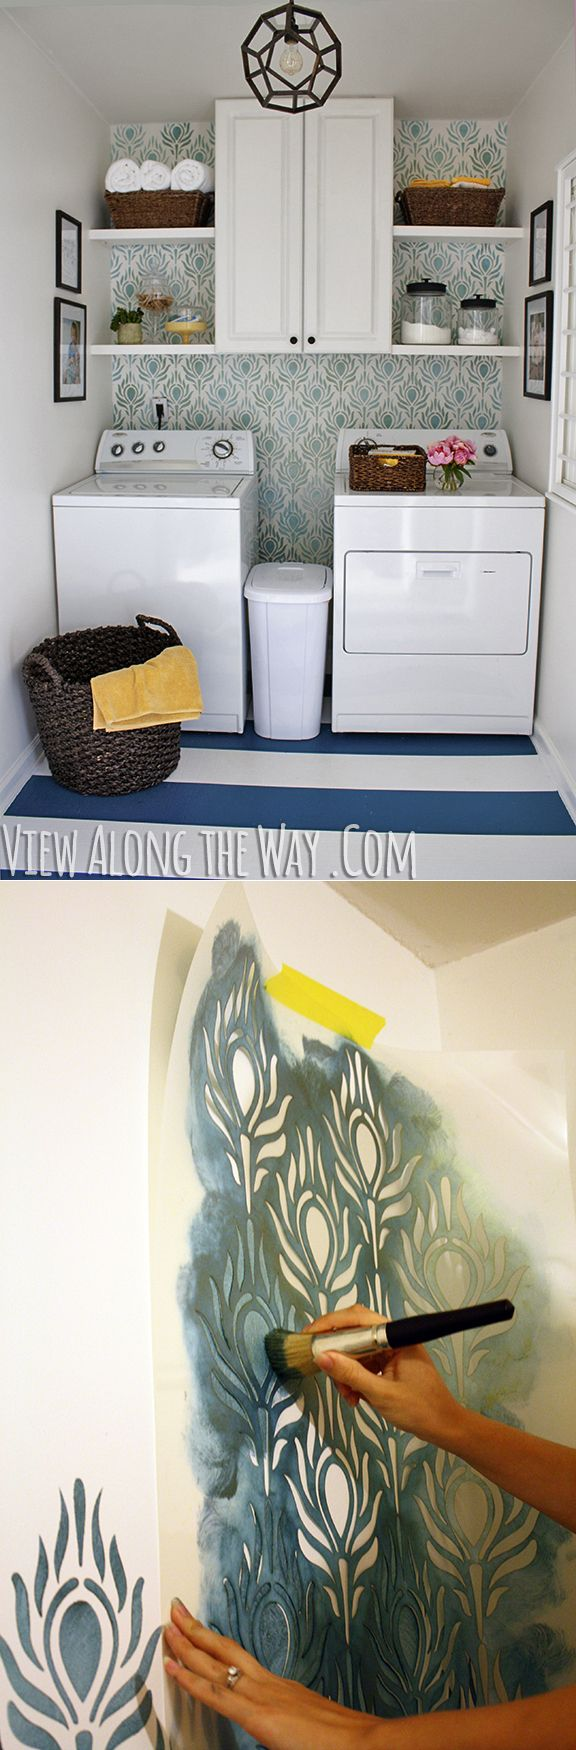 DIY :: how to Wall Stenciling ( http://www.viewalongtheway.com/2013/01/adventures-in-wall-stenciling-and-a-giveaway/ )